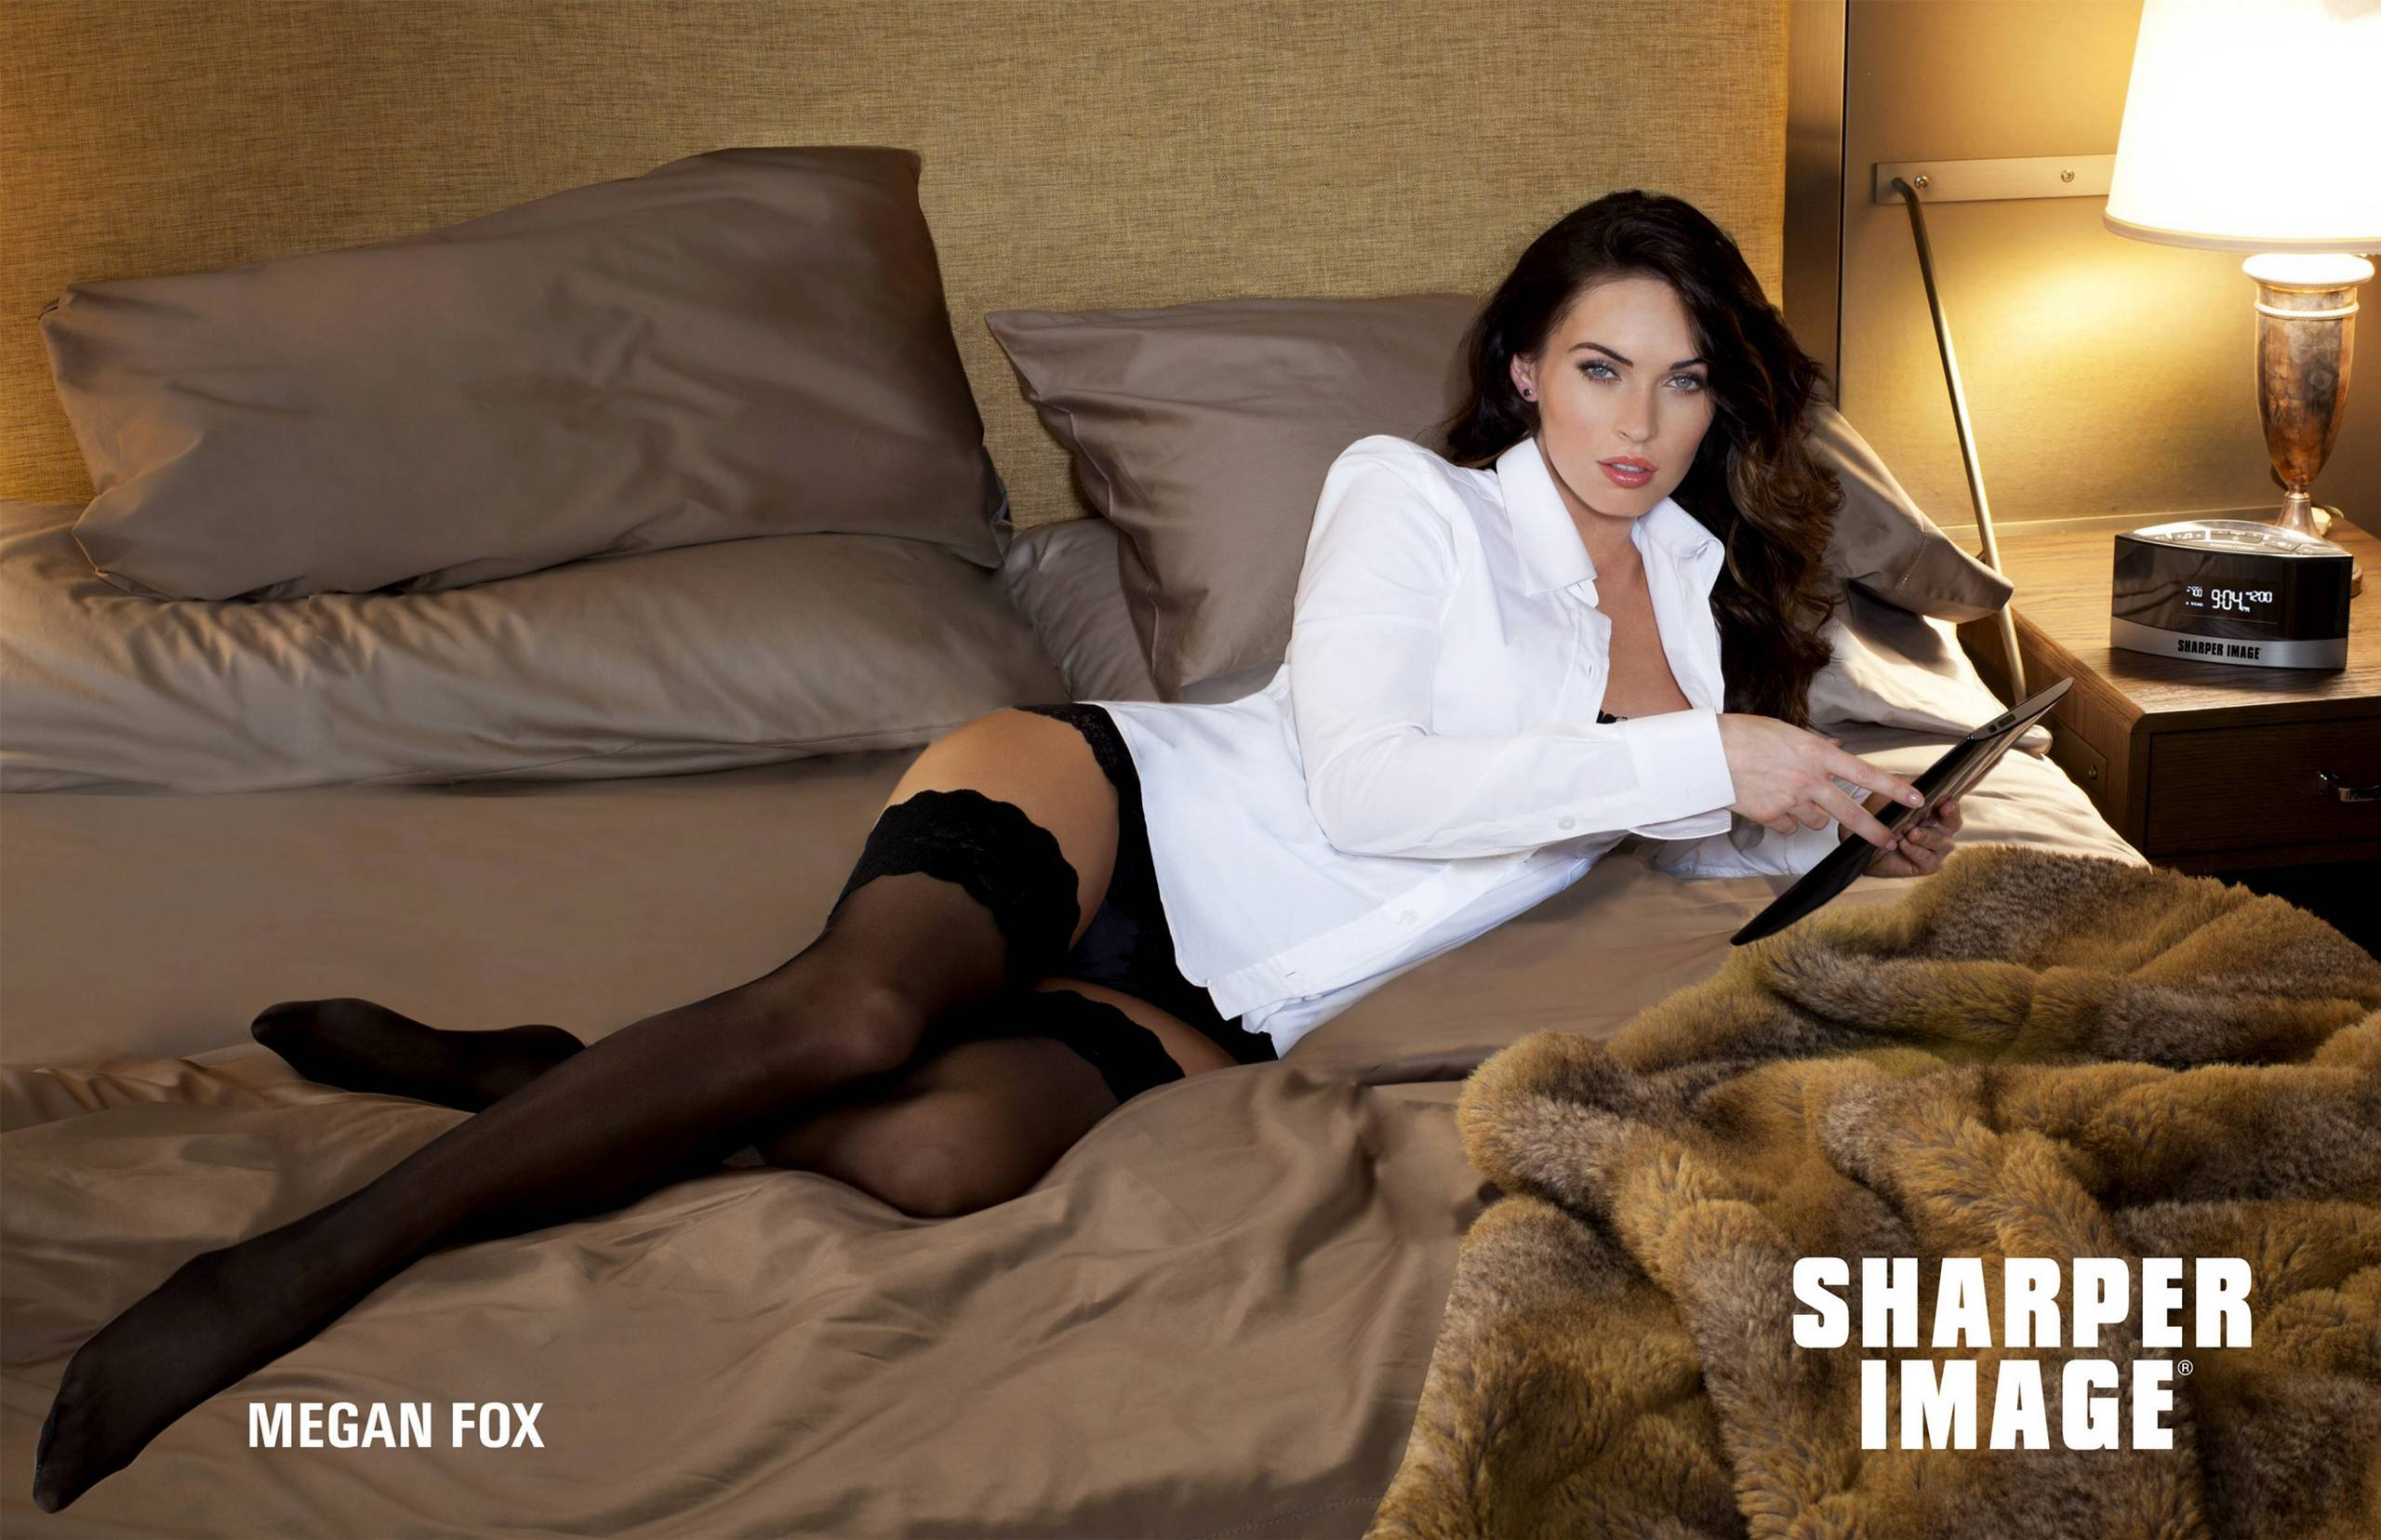 Megan Fox face of Sharper Image 2012